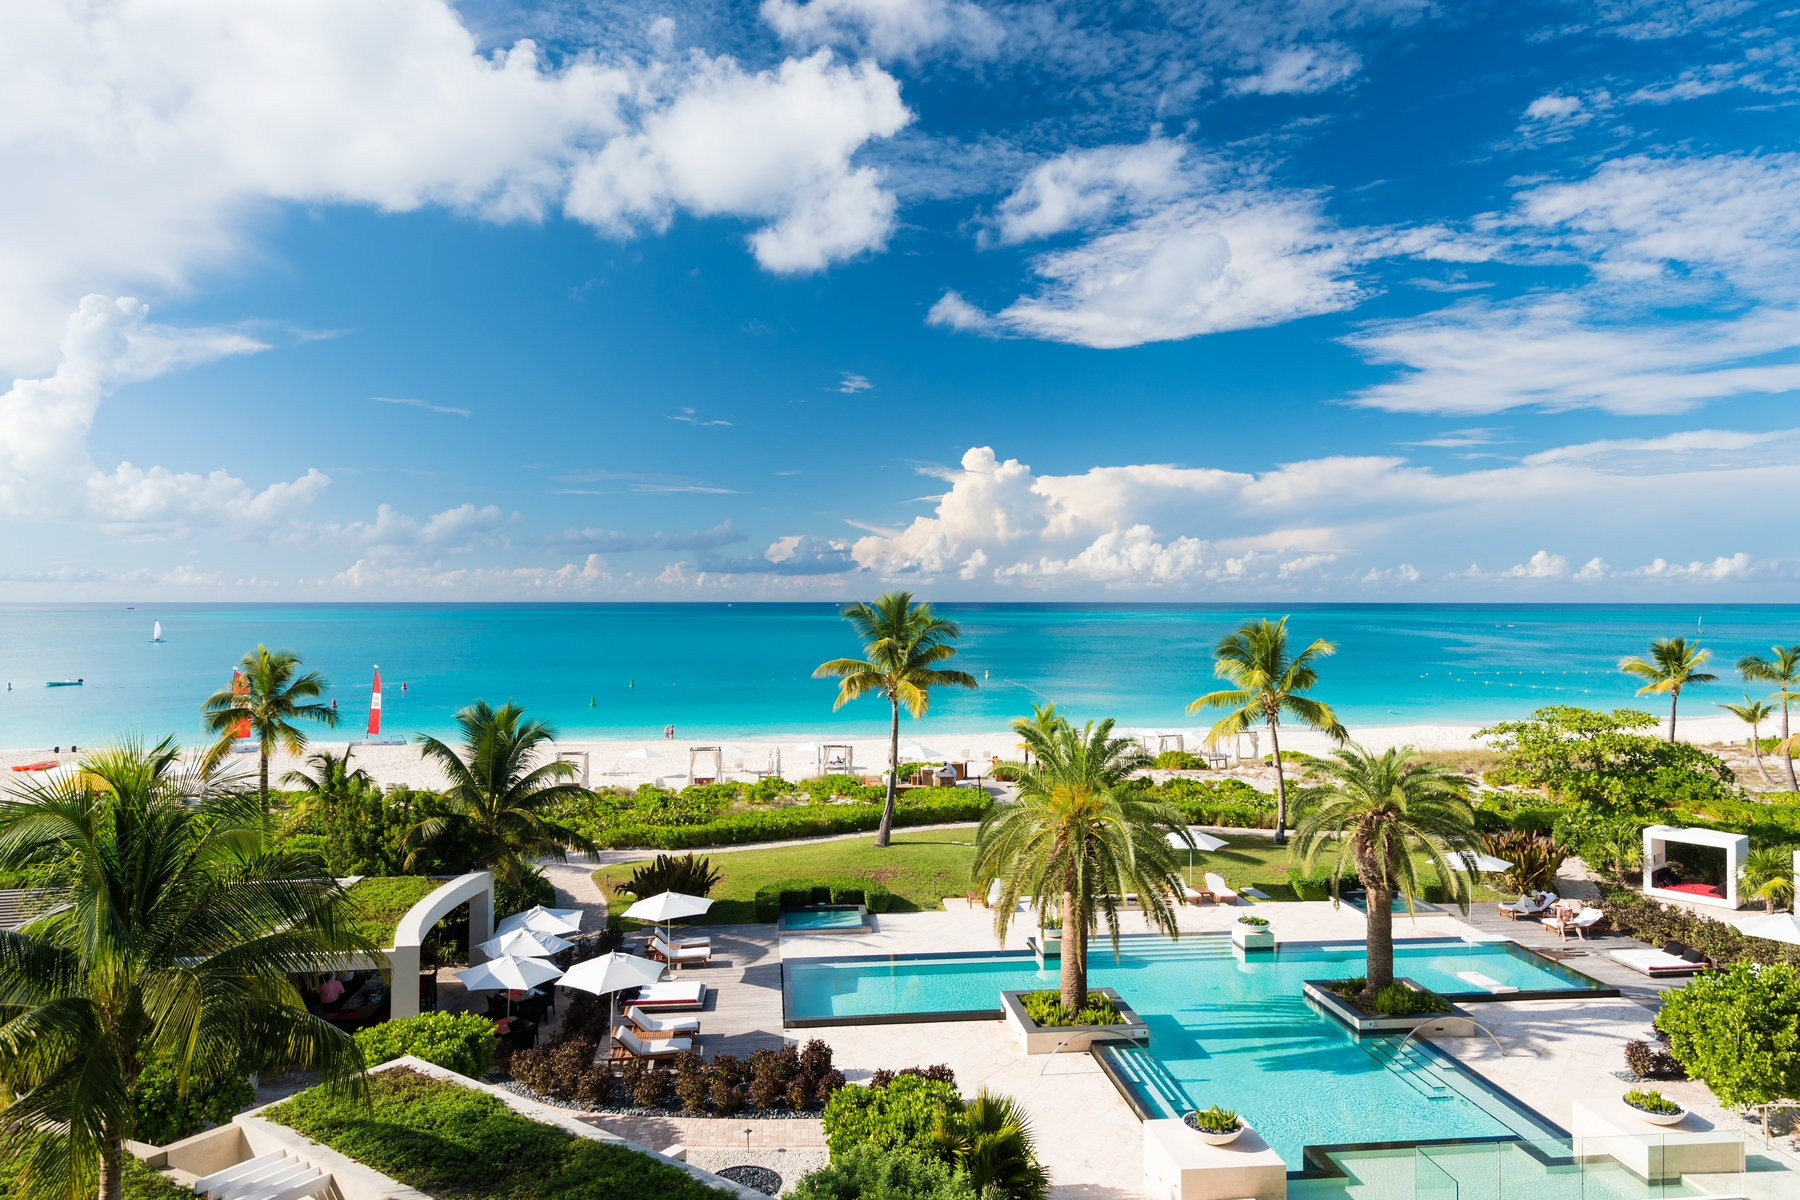 Condominium for Sale at The Estate at Grace Bay Club F304 Grace Bay Resorts, Grace Bay, Turks And Caicos Islands